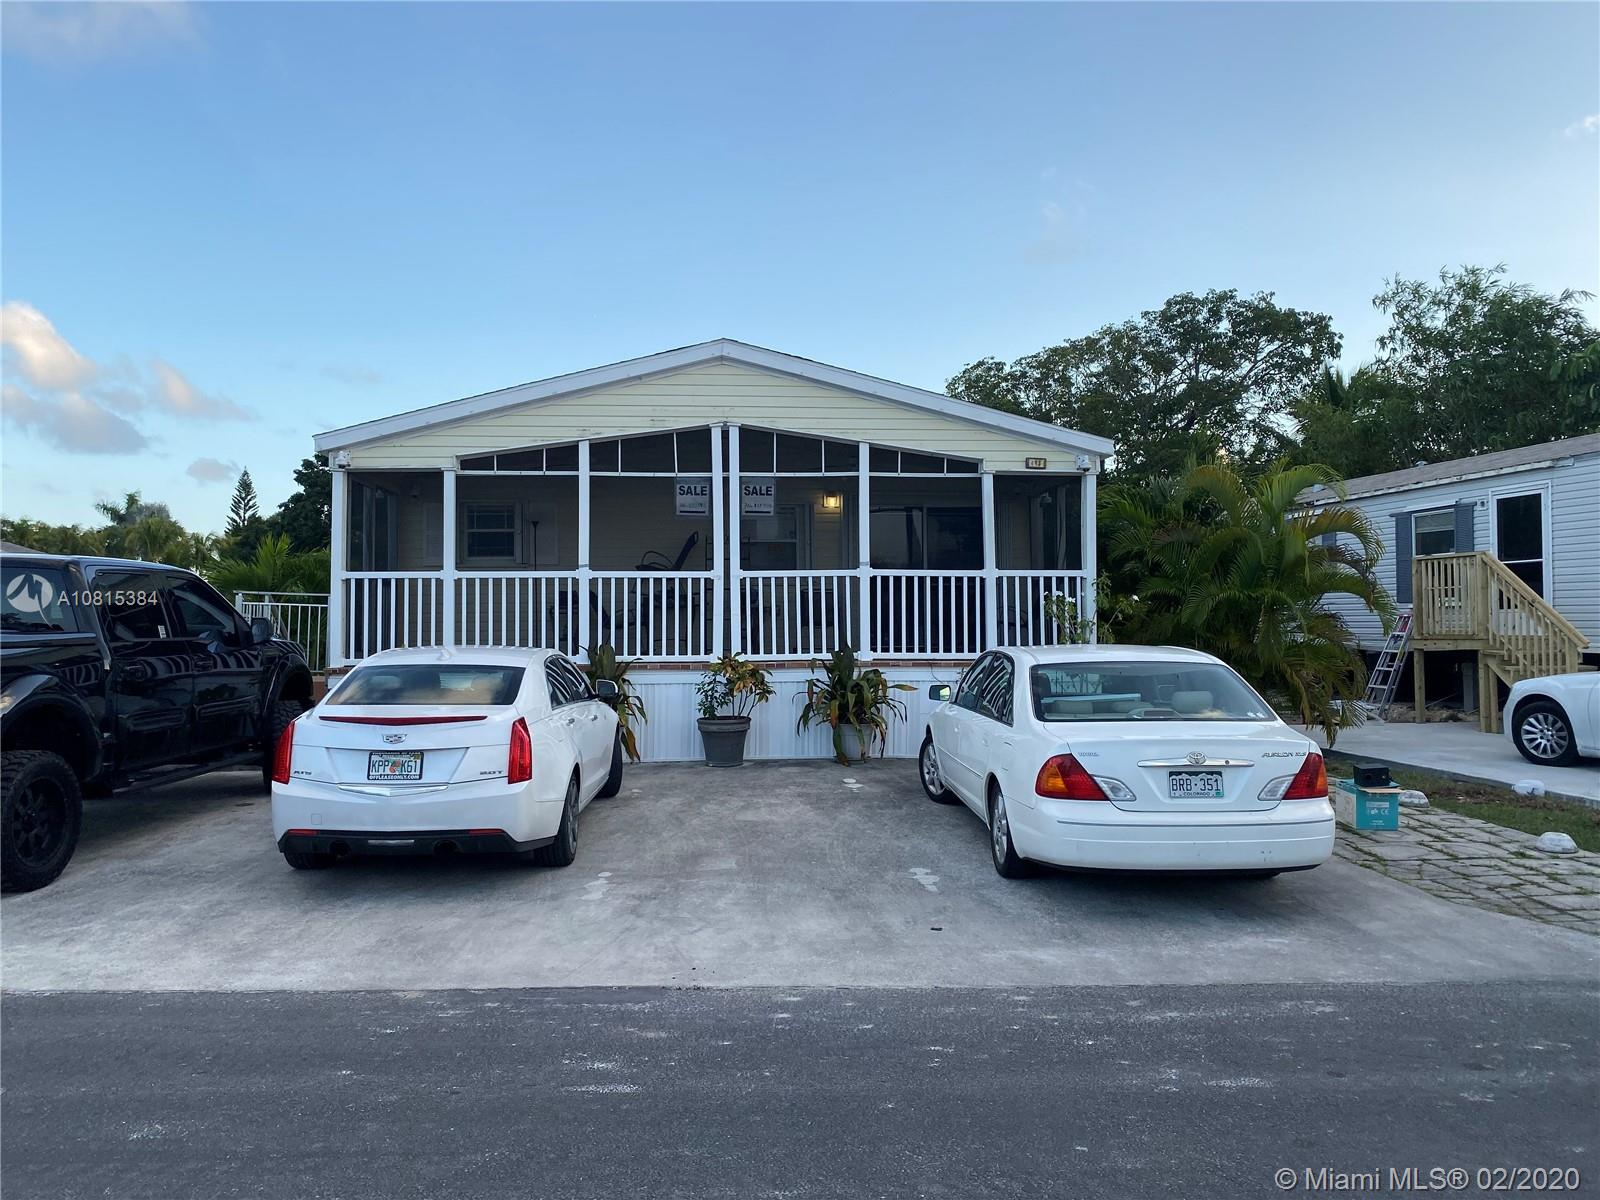 18748 SW 344 Street, Homestead, FL 33034 - Homestead, FL real estate listing